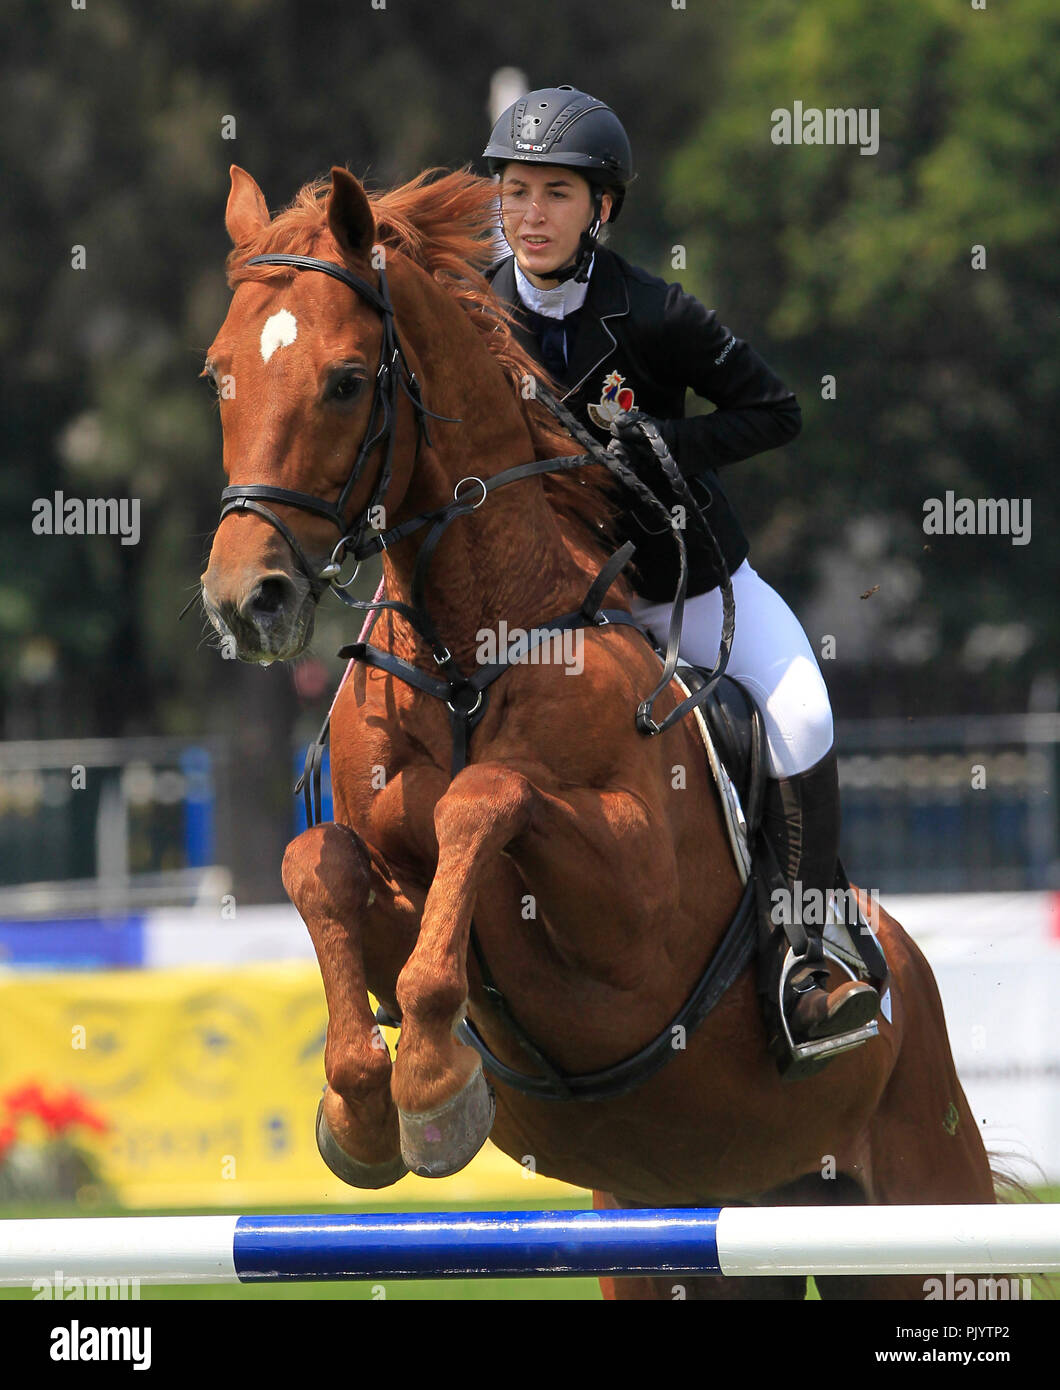 The French Emma Riff competes in the mixed relay equestrian jump event held in the framework of the Modern Pentathlon World Championship in Mexico City, Mexico, 09 September 2018. EFE/Mario Guzman - Stock Image